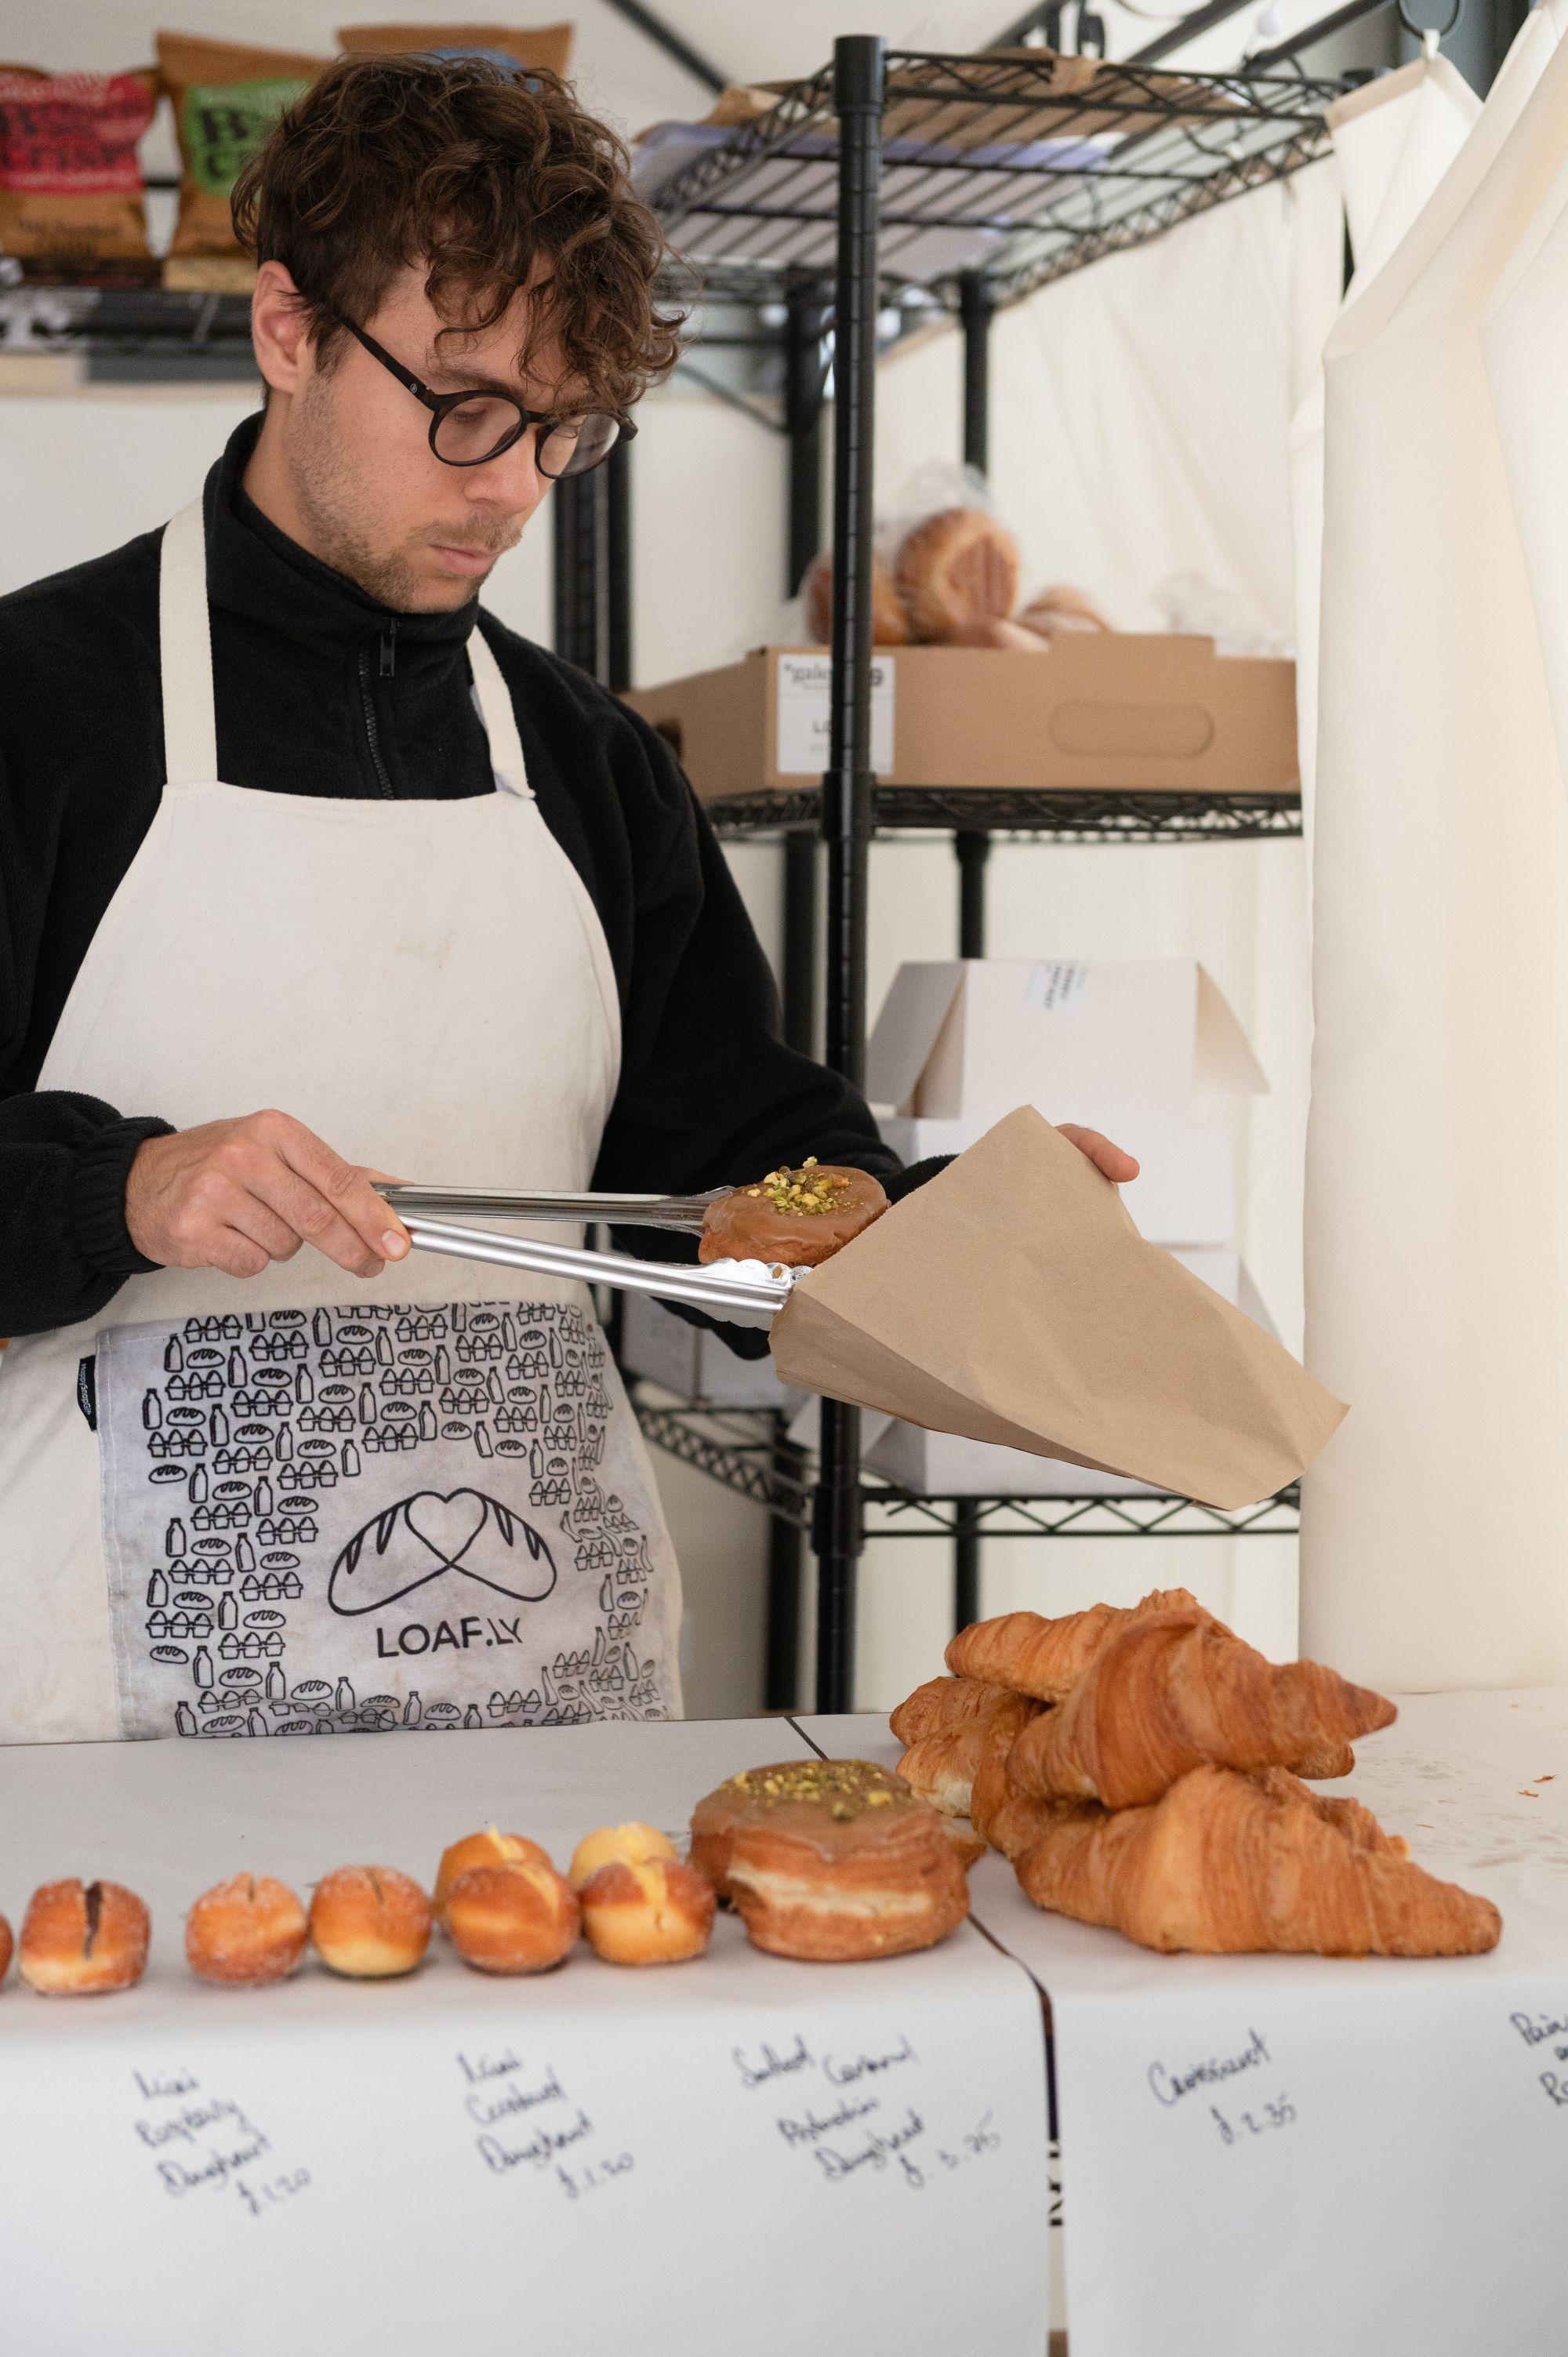 Pastries being put in a bag by a loafly employee